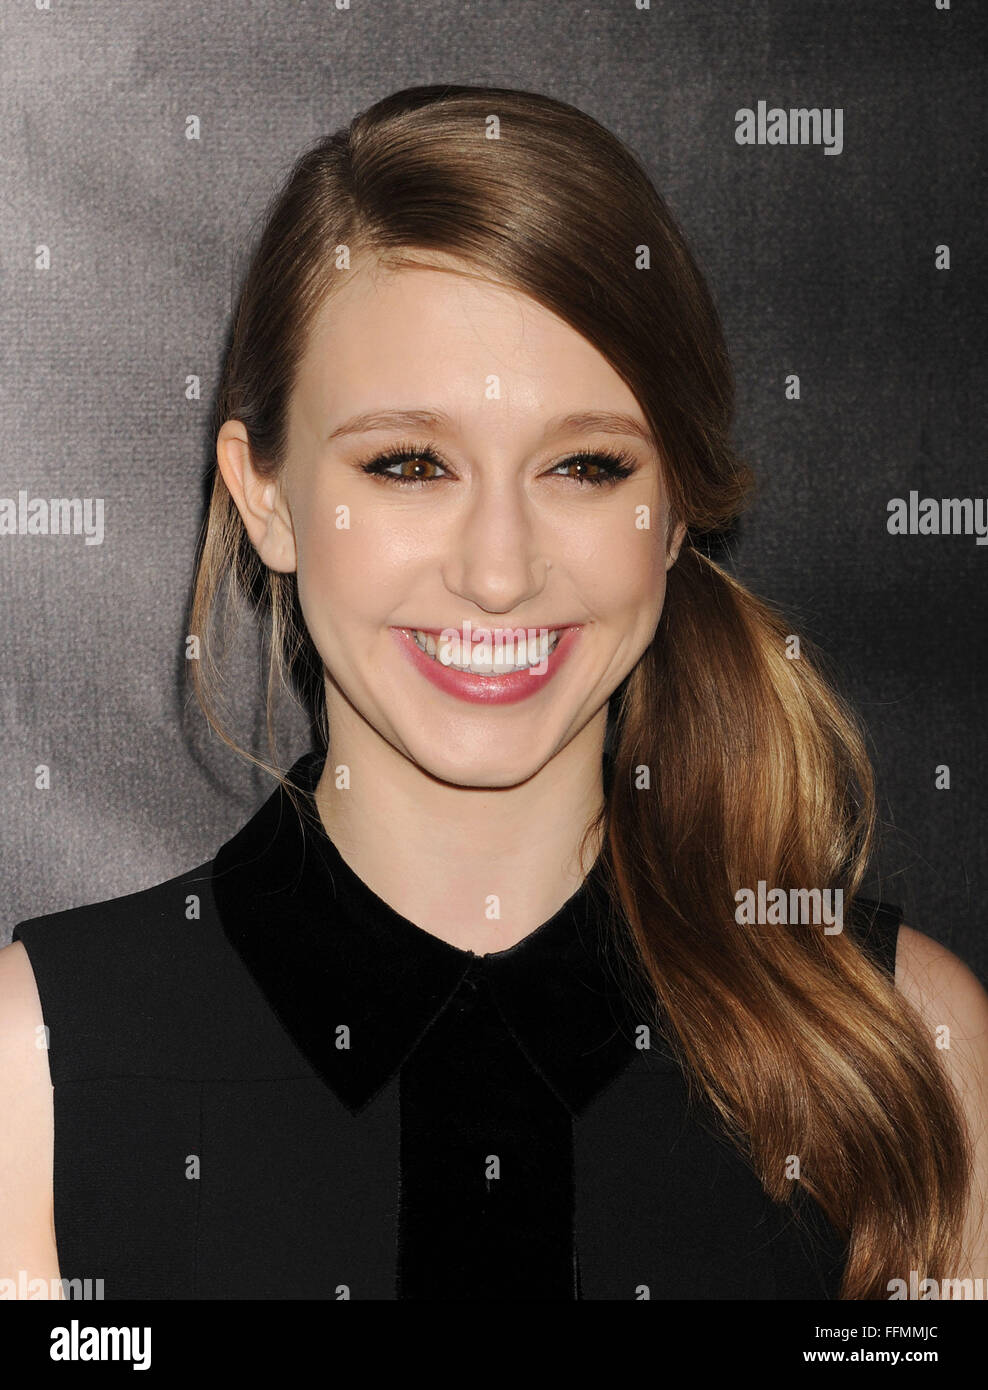 Actress Taissa Farmiga attends 'The Final Girls' screening during the 2015 Los Angeles Film Festival at - Stock Image